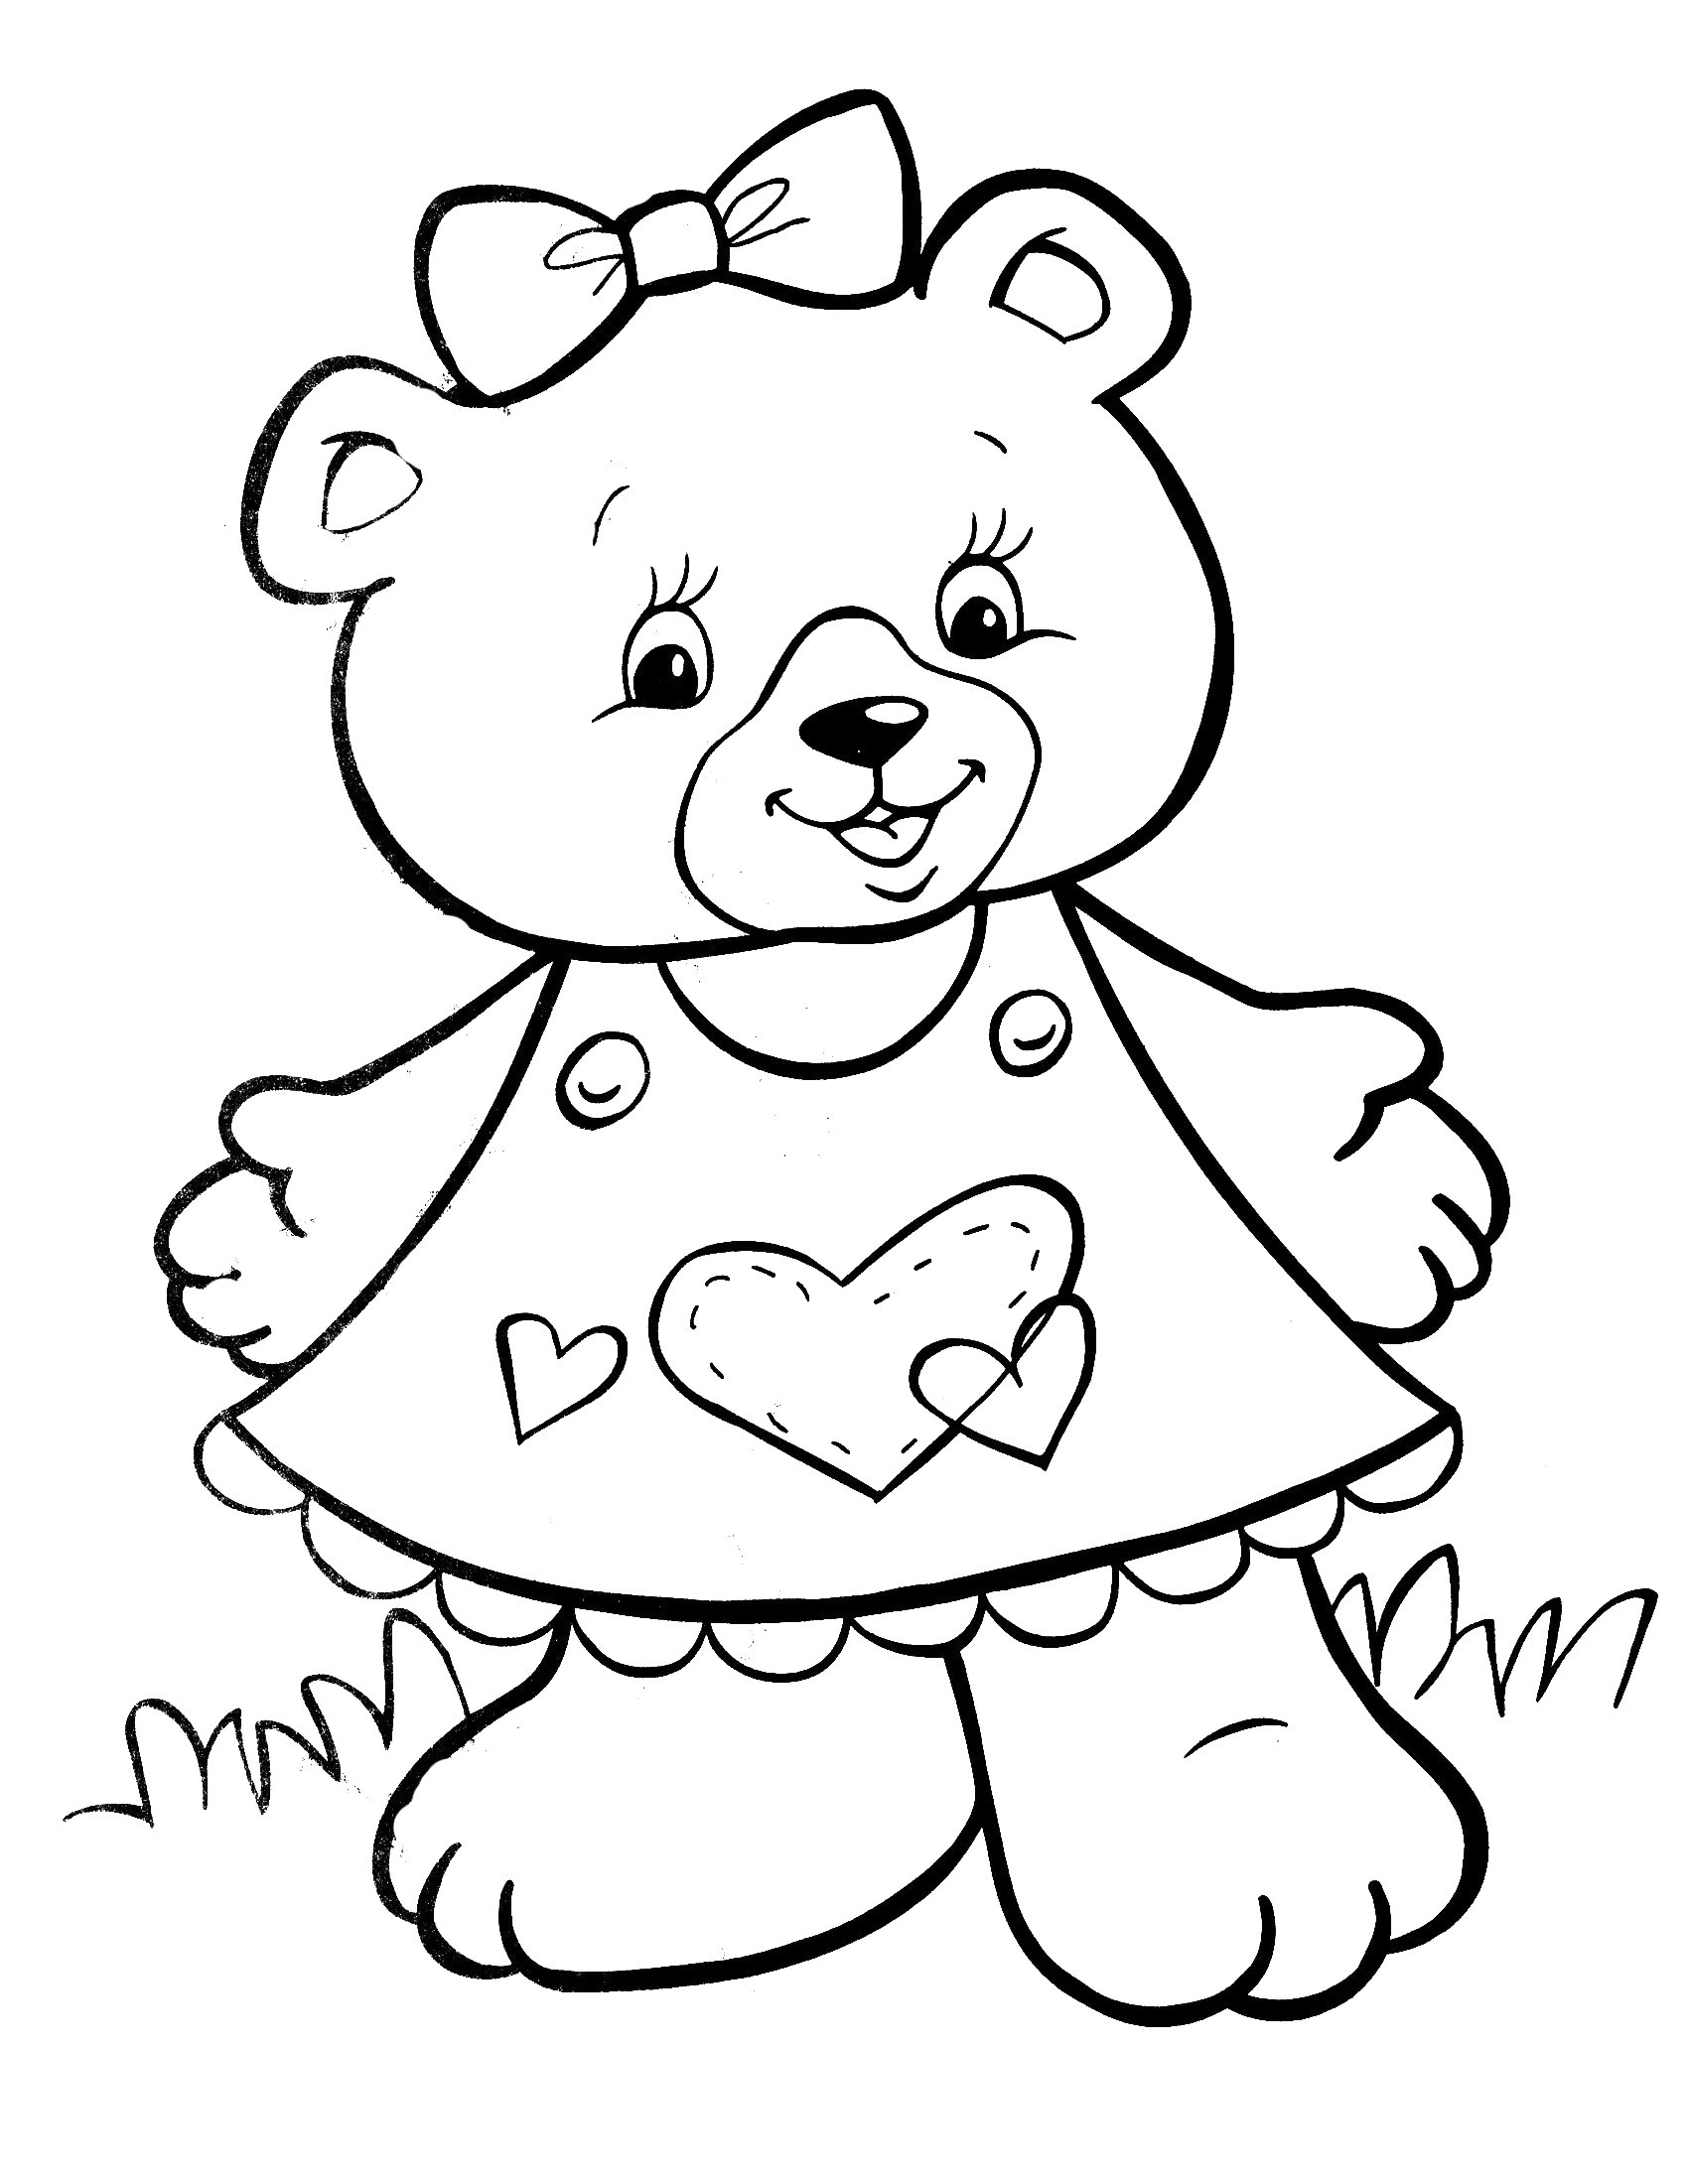 - Crayola Free Coloring Pages Crayola Free Coloring Pages Parkspfe